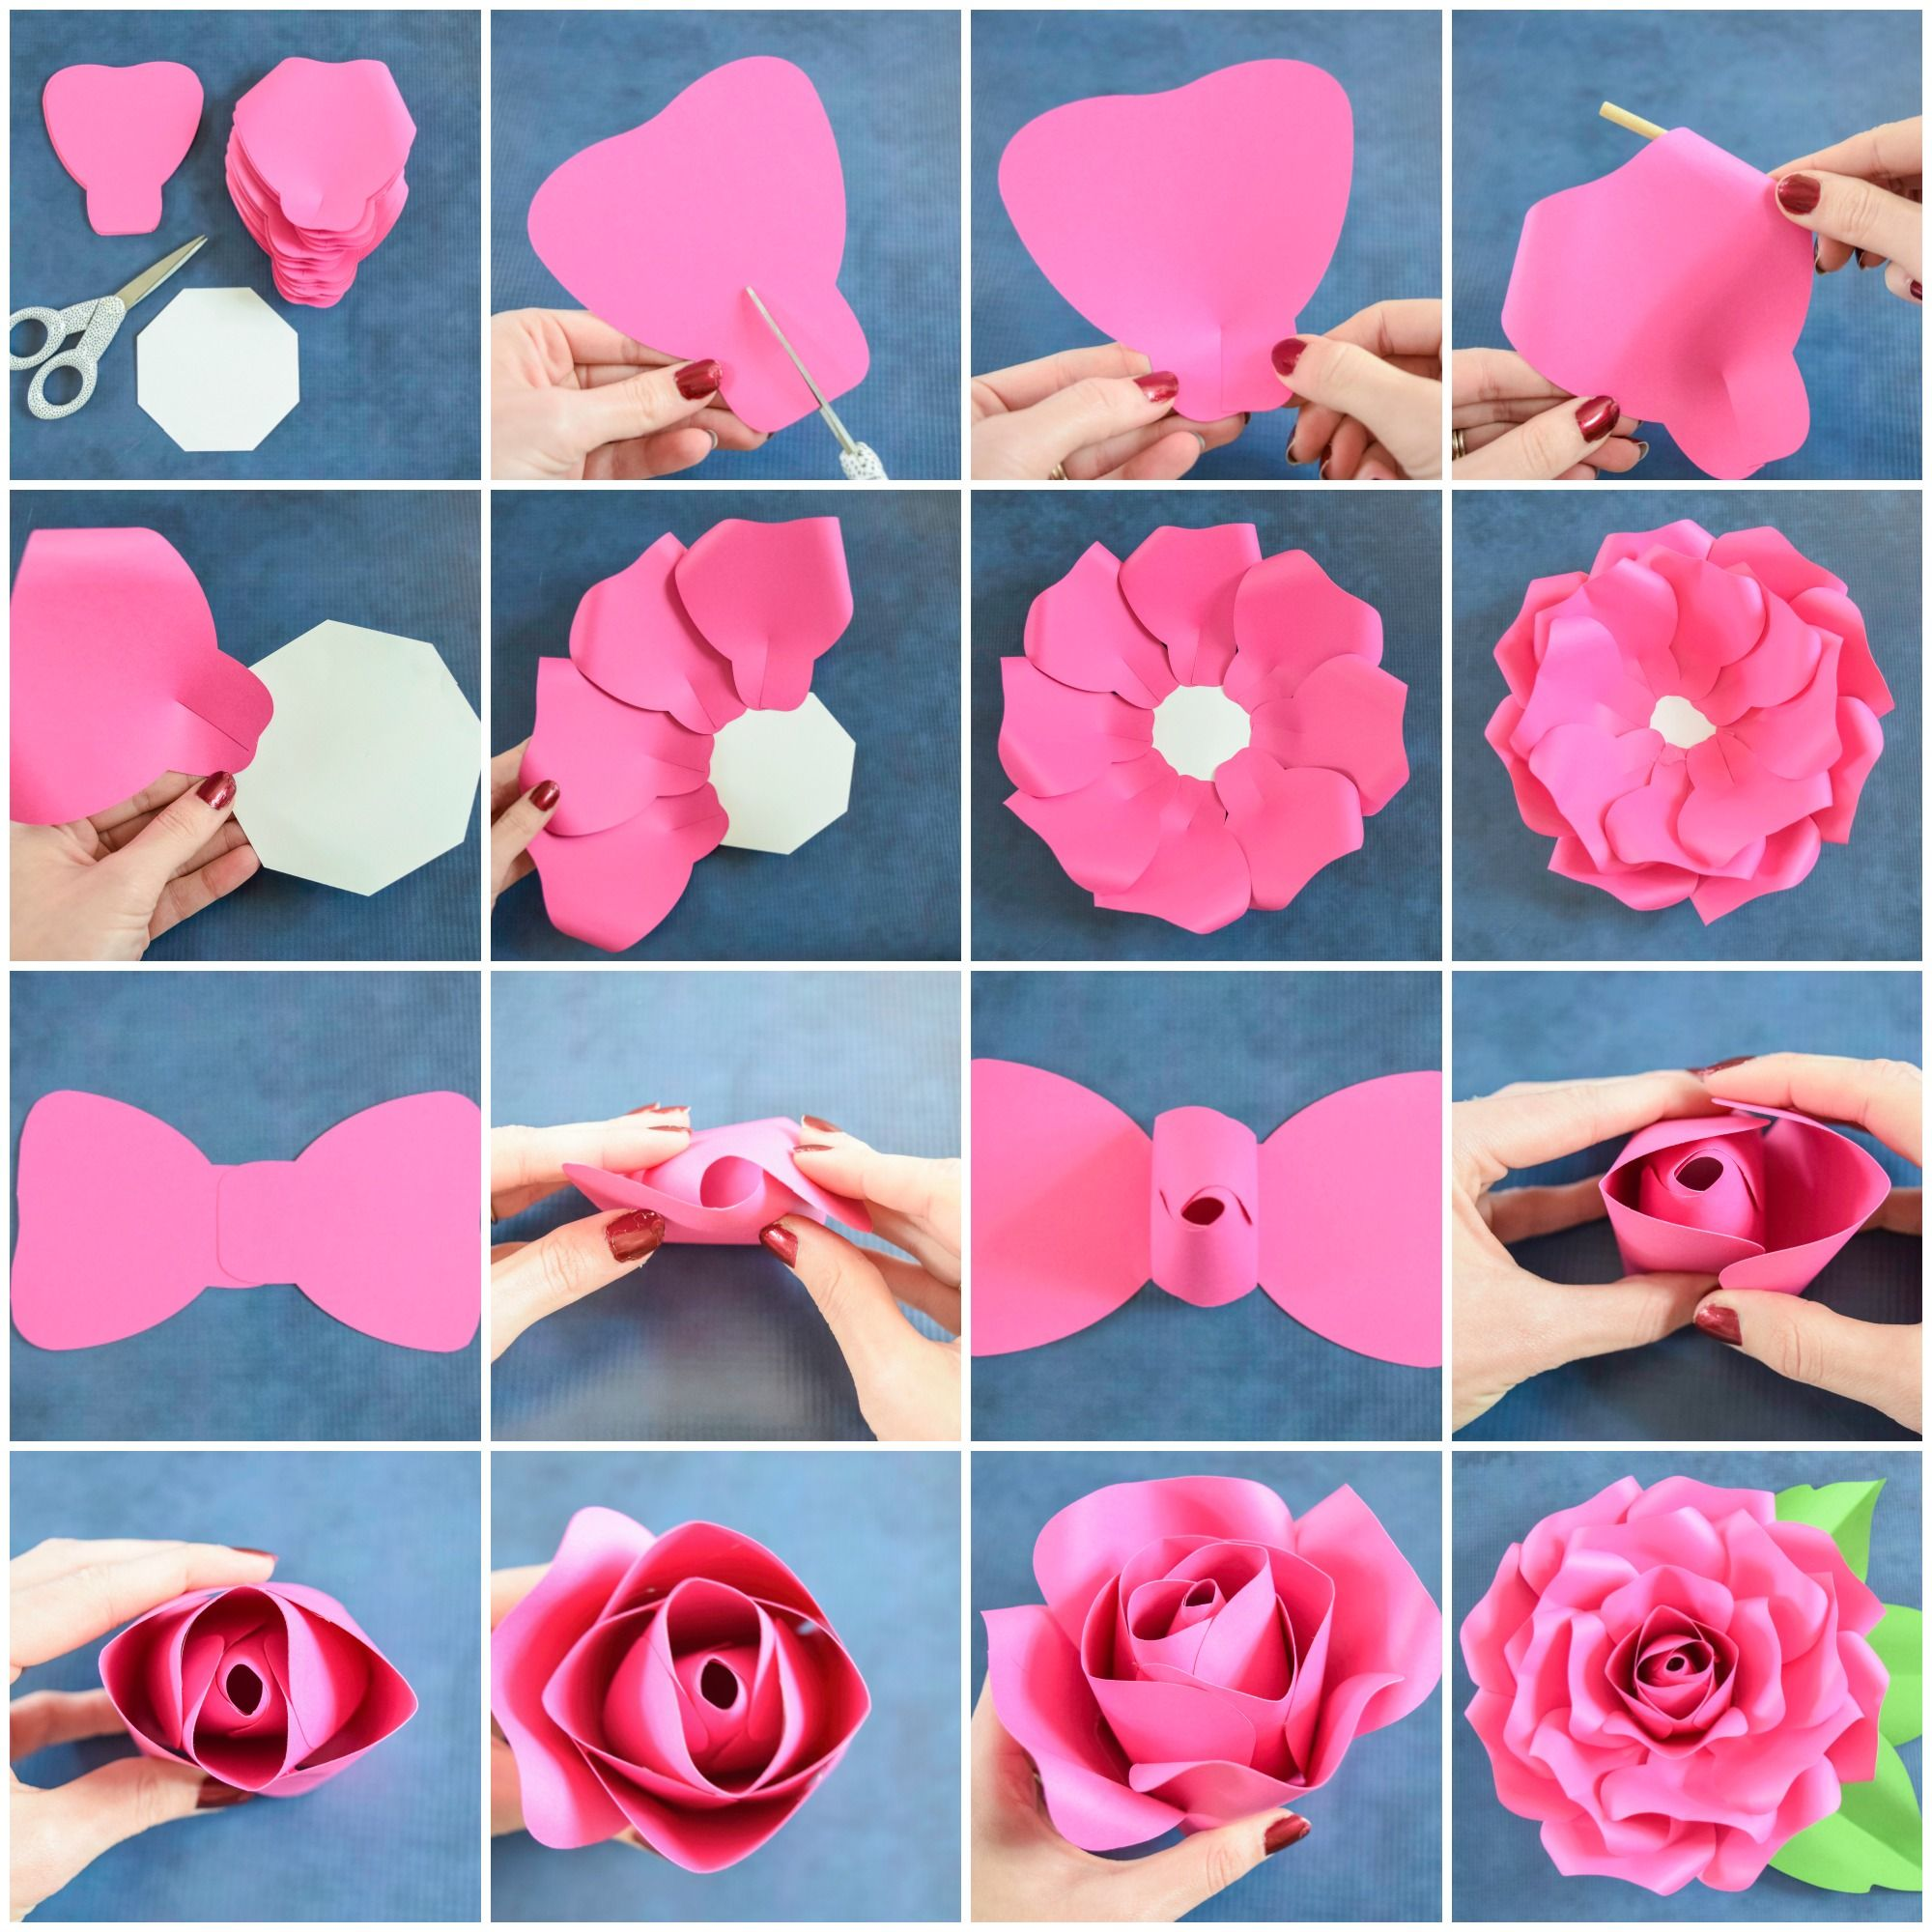 Giant Paper Flowers How To Make Paper Garden Roses With Step By Step Tutorial Paper Flower Tutorial Big Paper Flowers Paper Flower Template